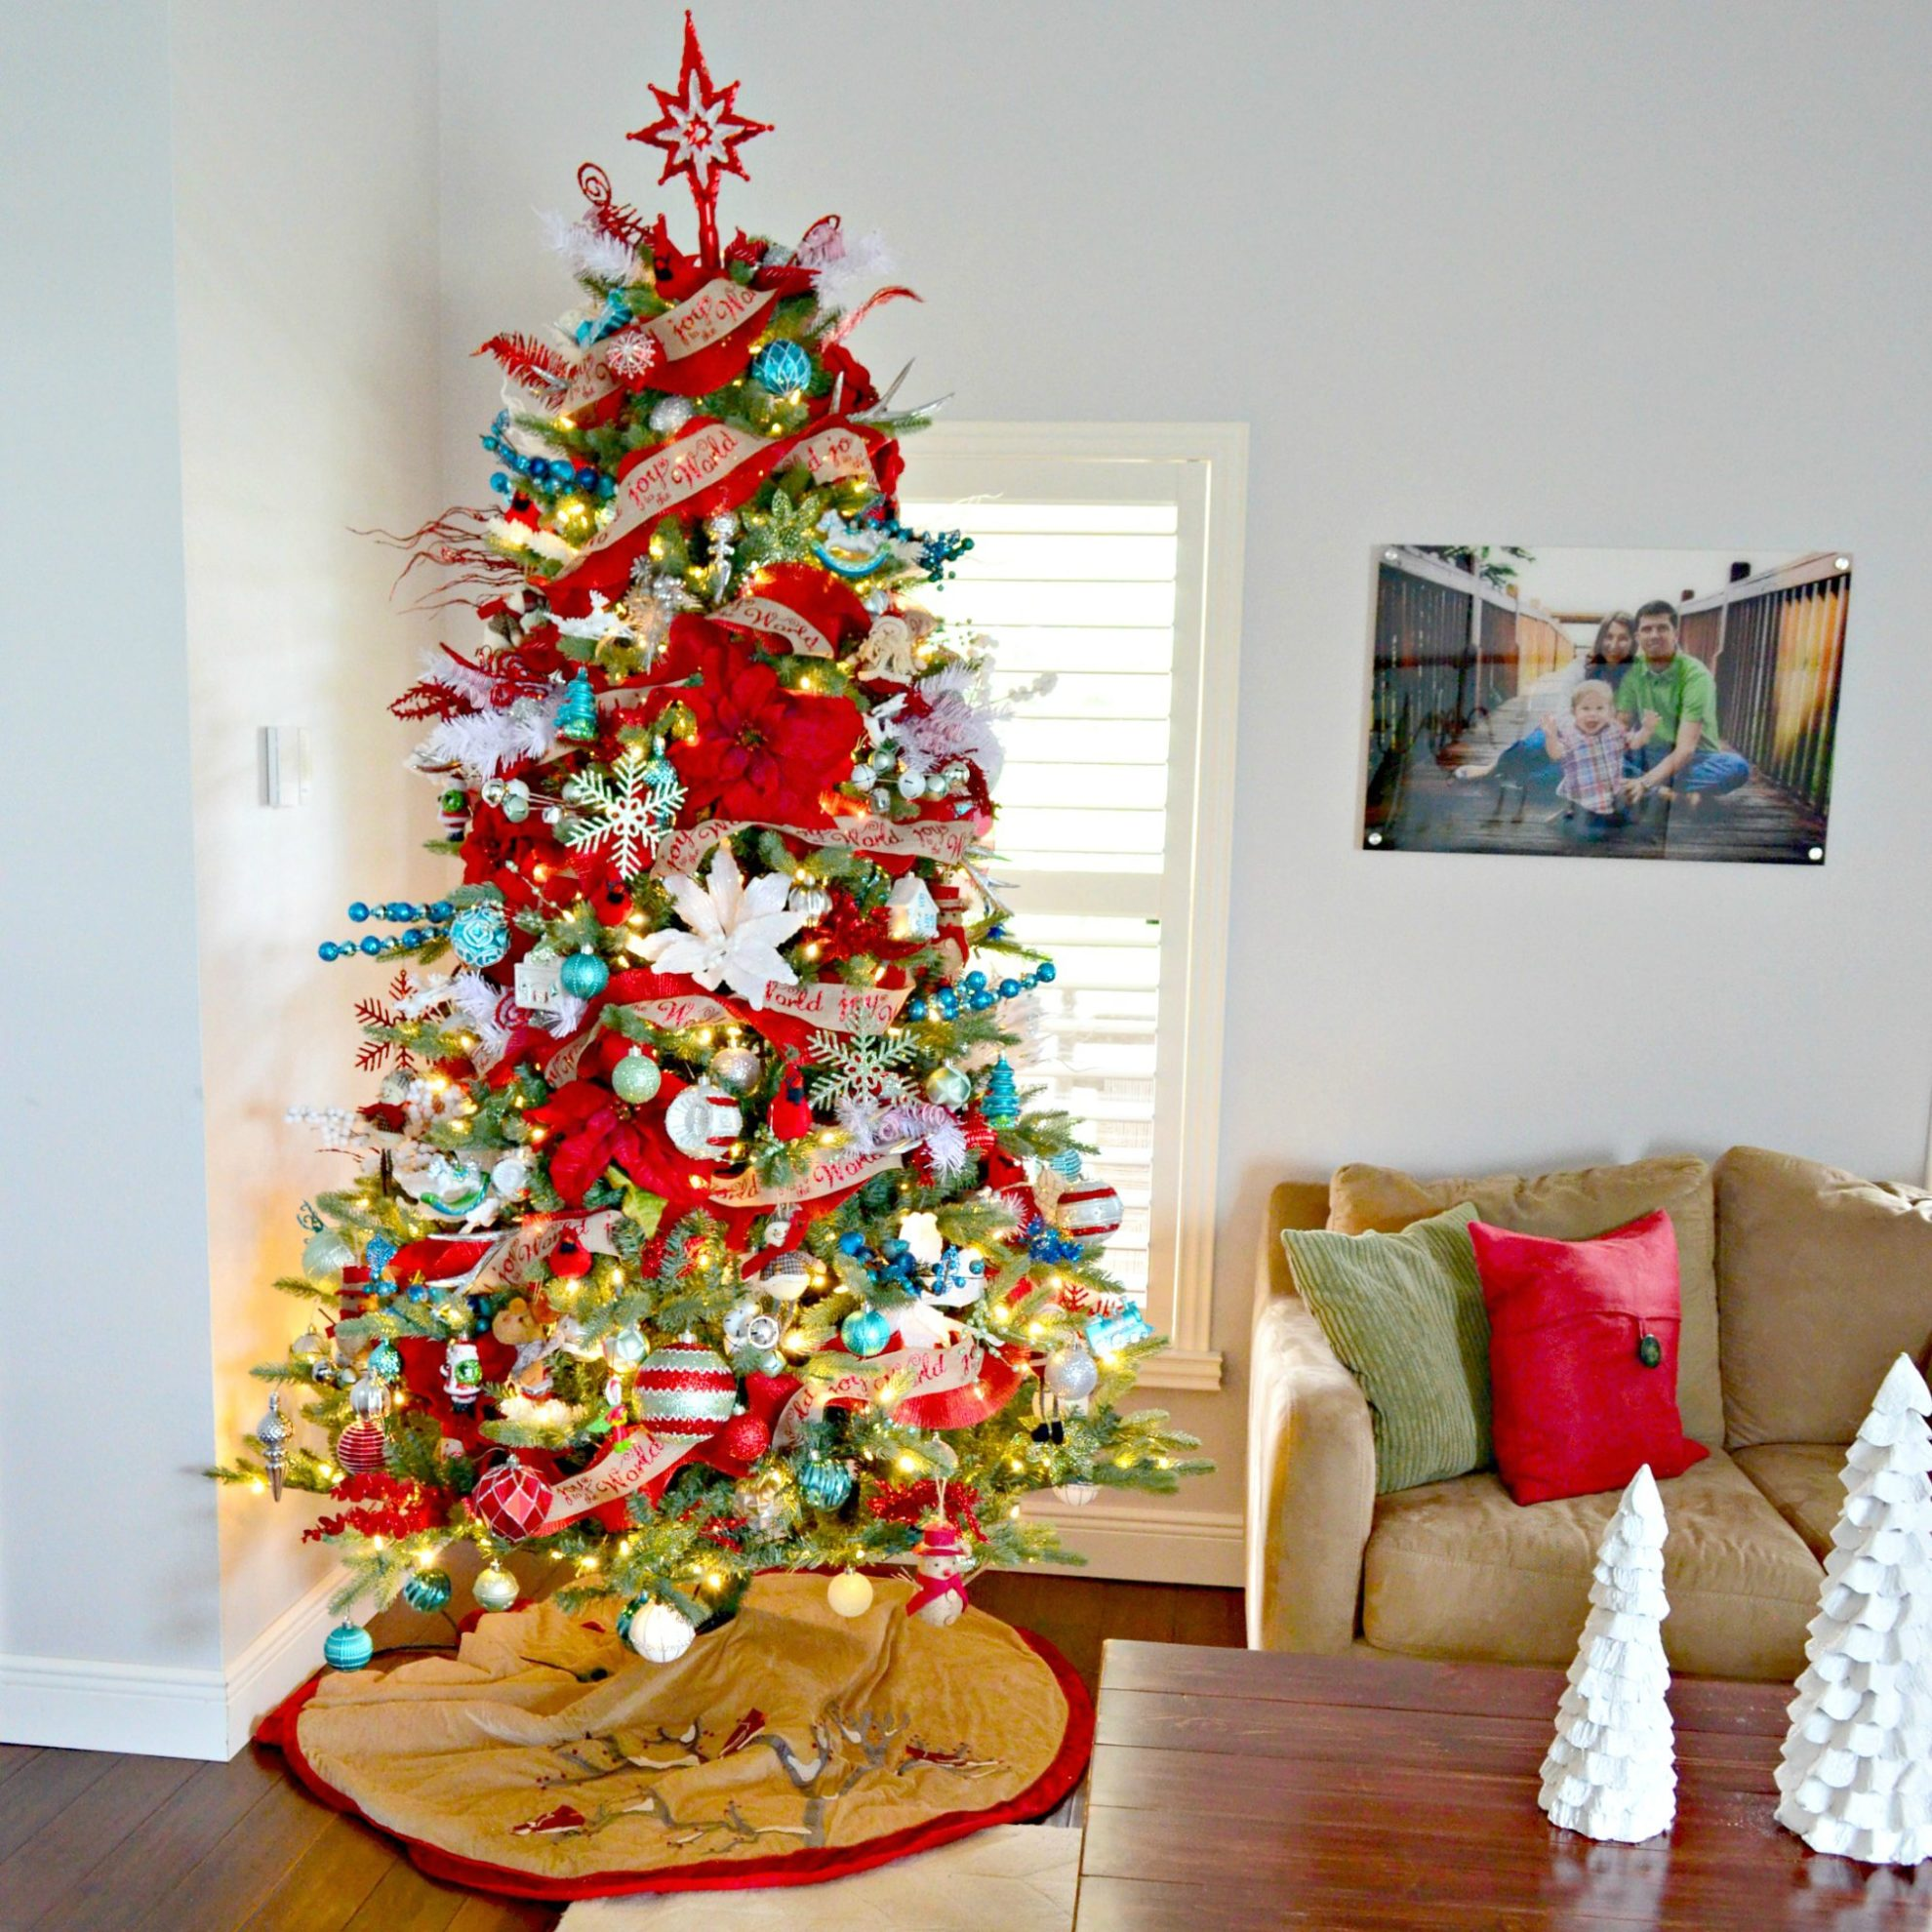 2017 Whimsical Christmas Tree - Sew Woodsy